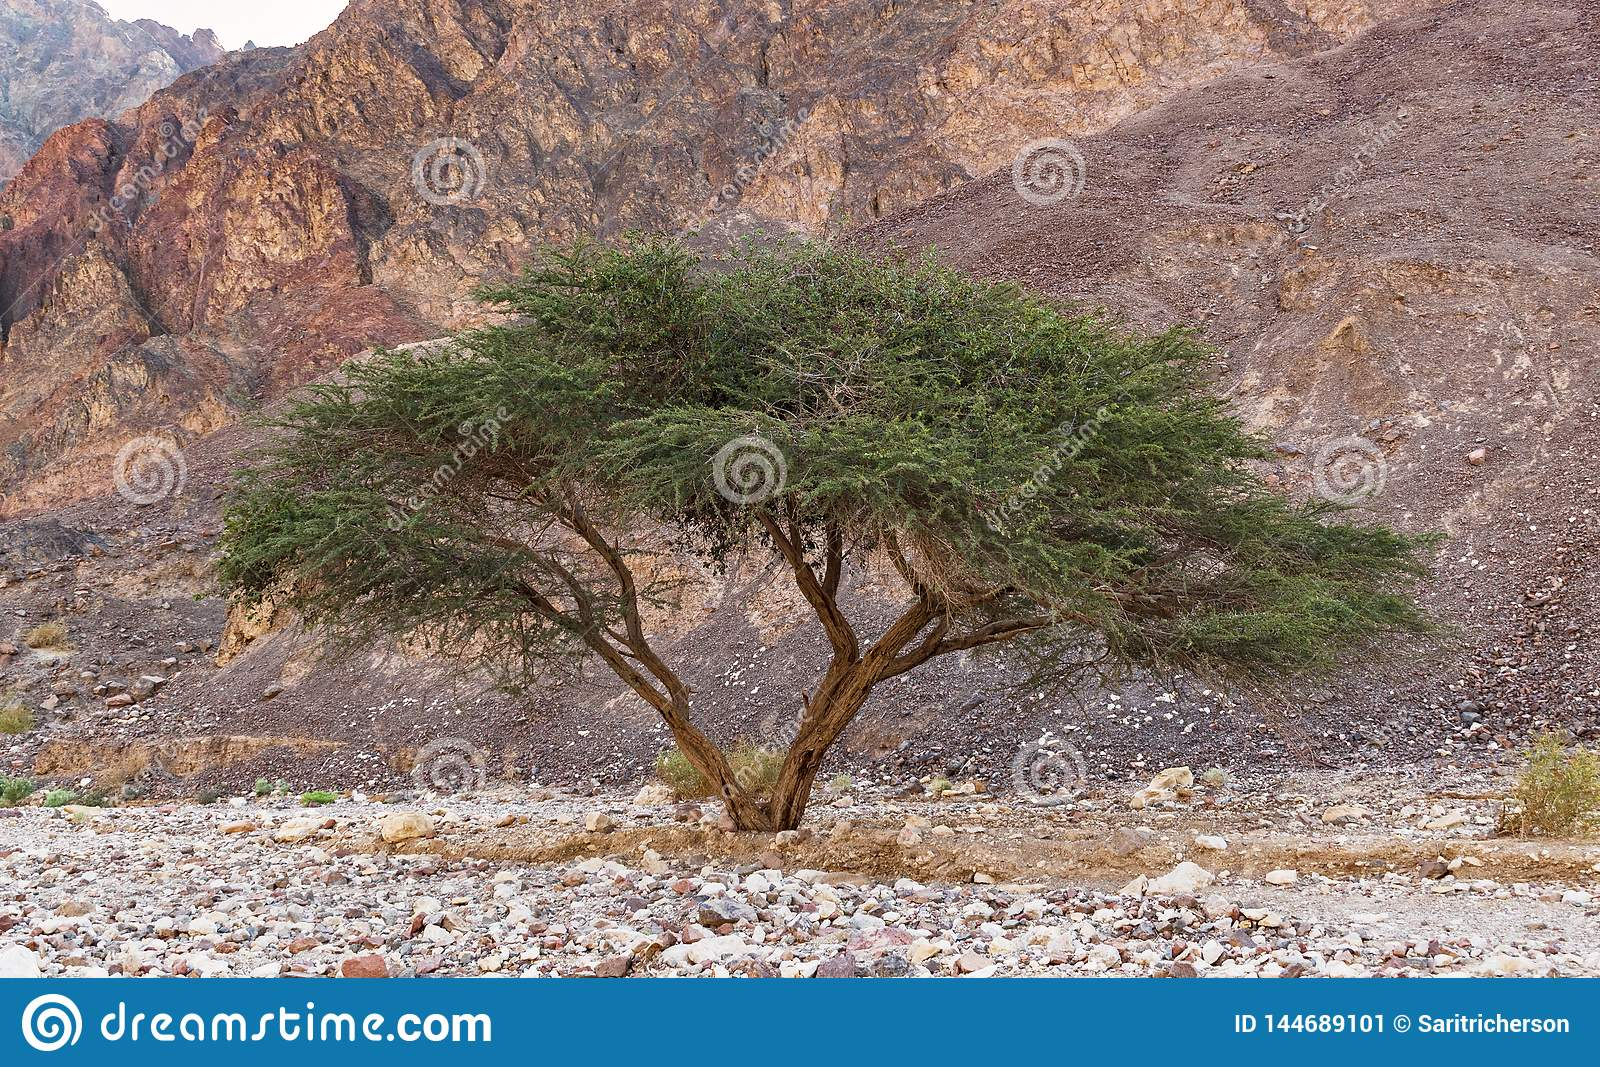 Umbrella Acacia in the Eilat Mountains of Israel